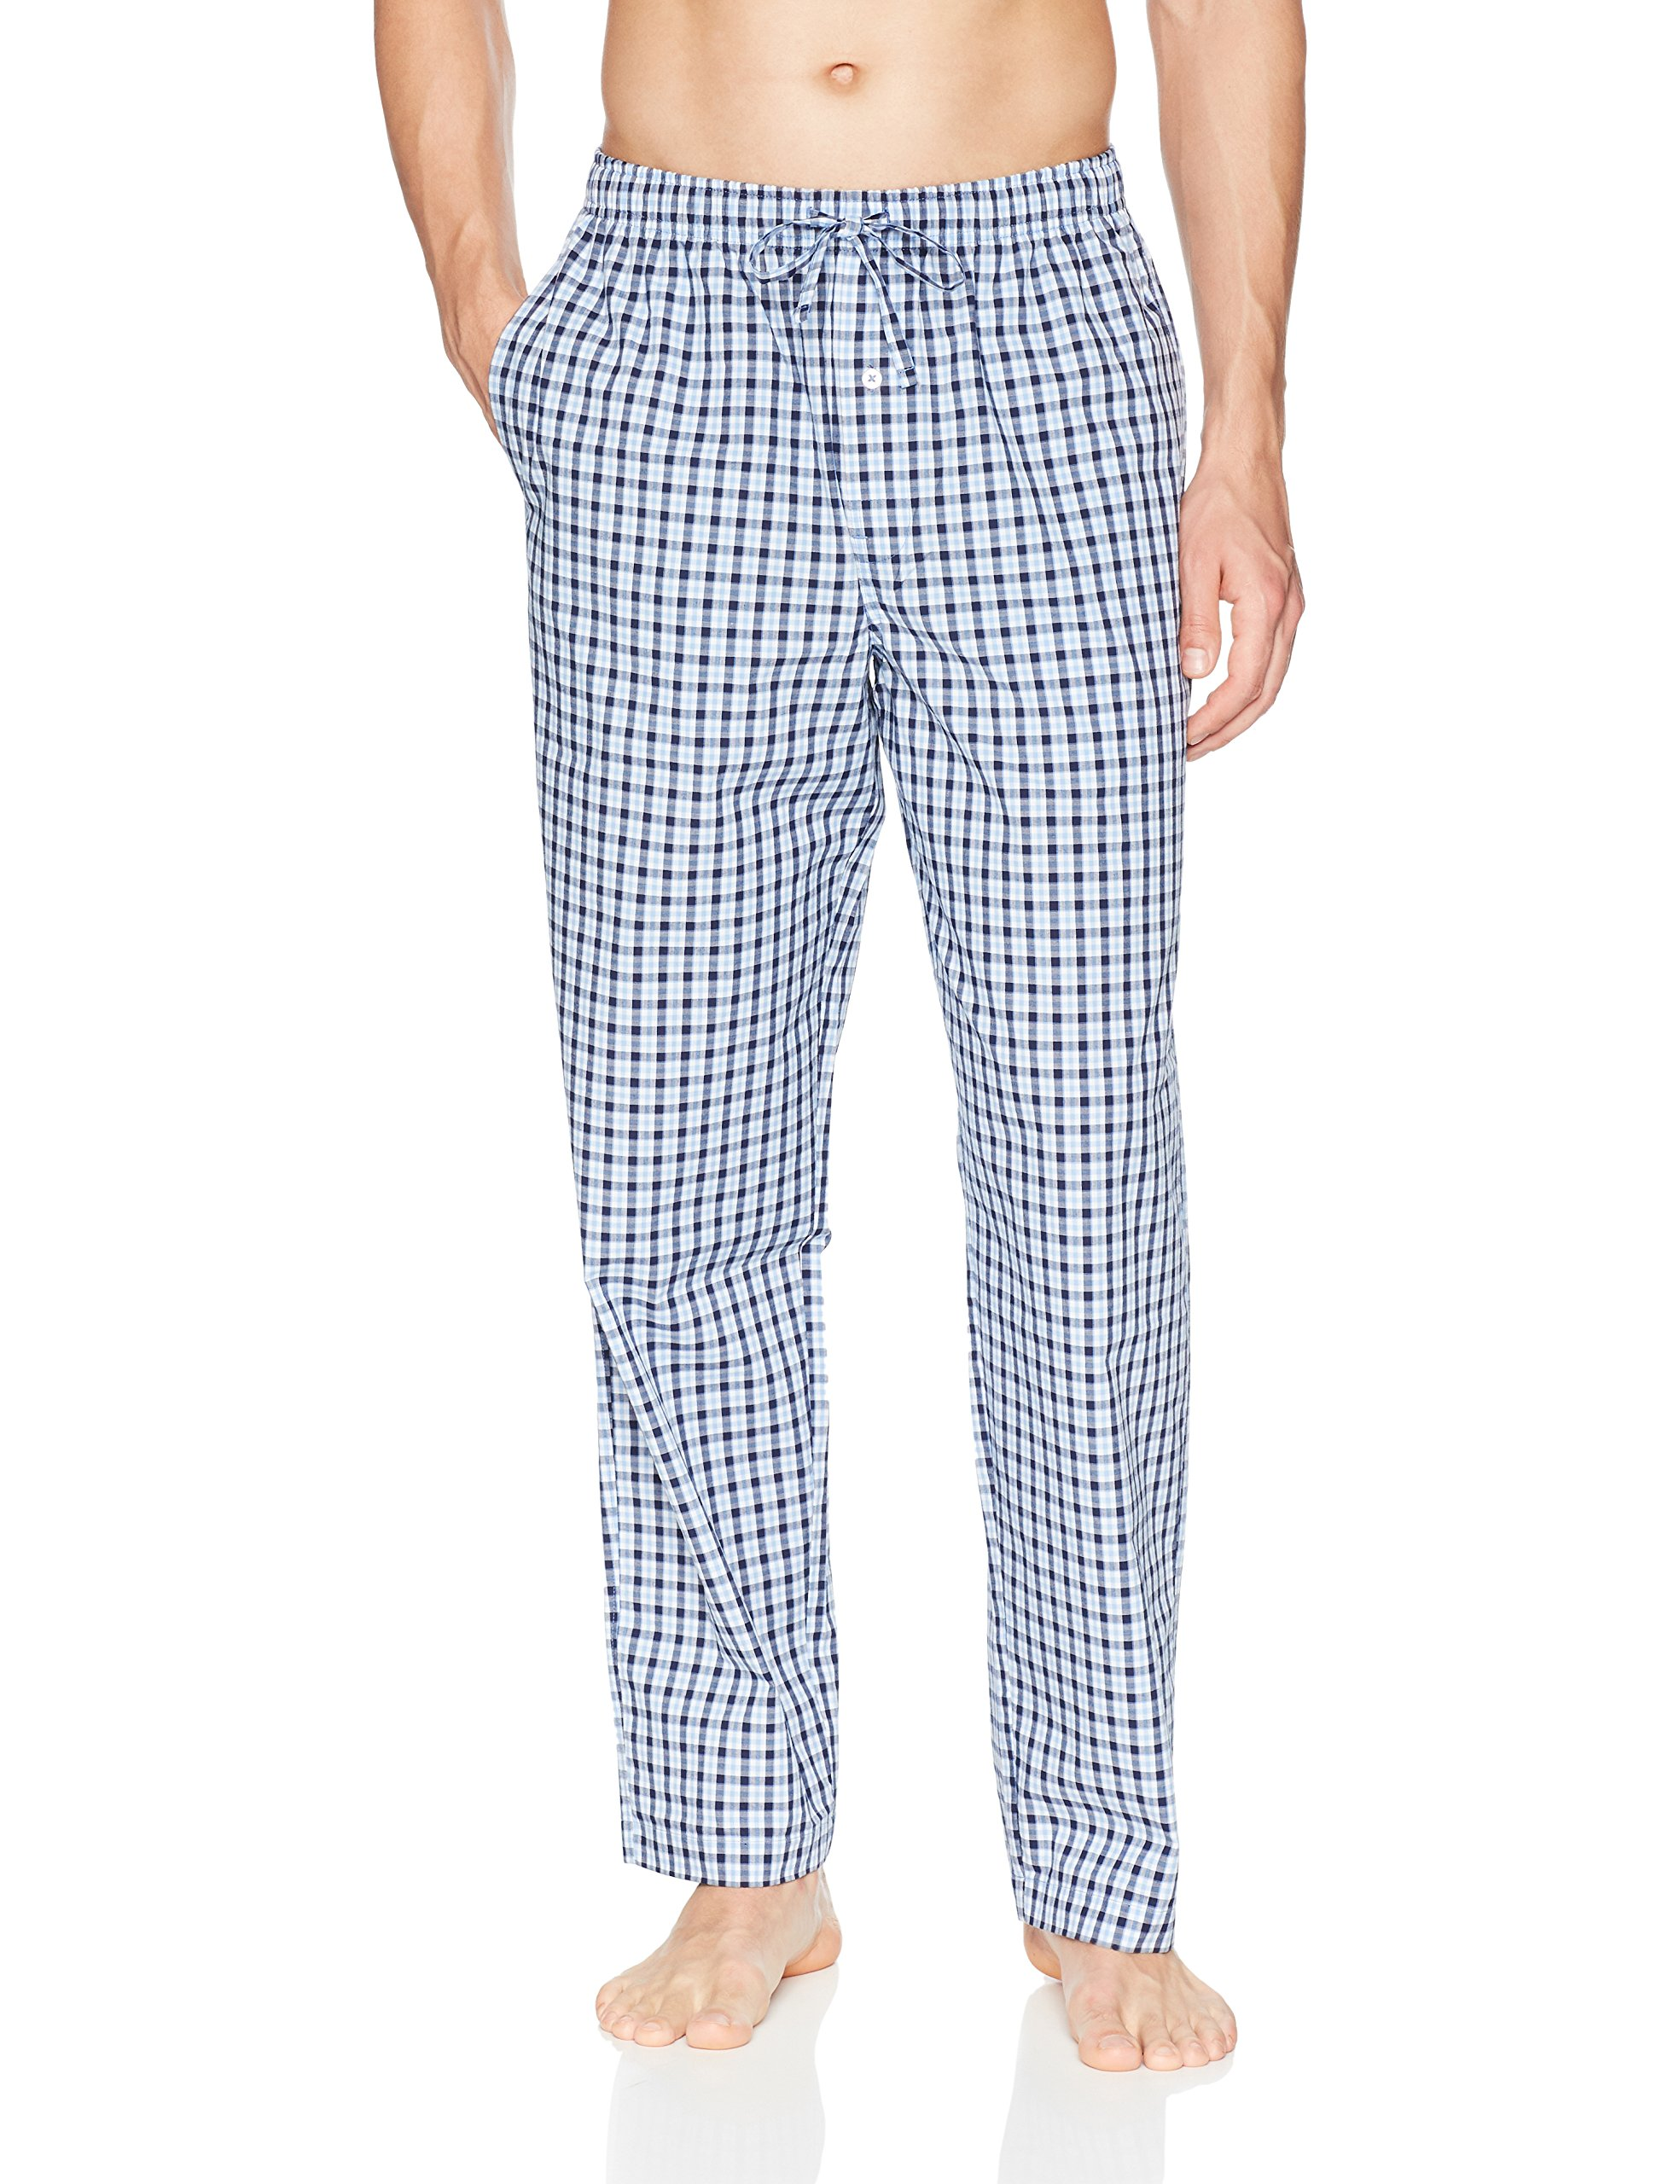 Amazon Essentials Men's Woven Pajama Pant, Light Blue/Navy Plaid, Medium